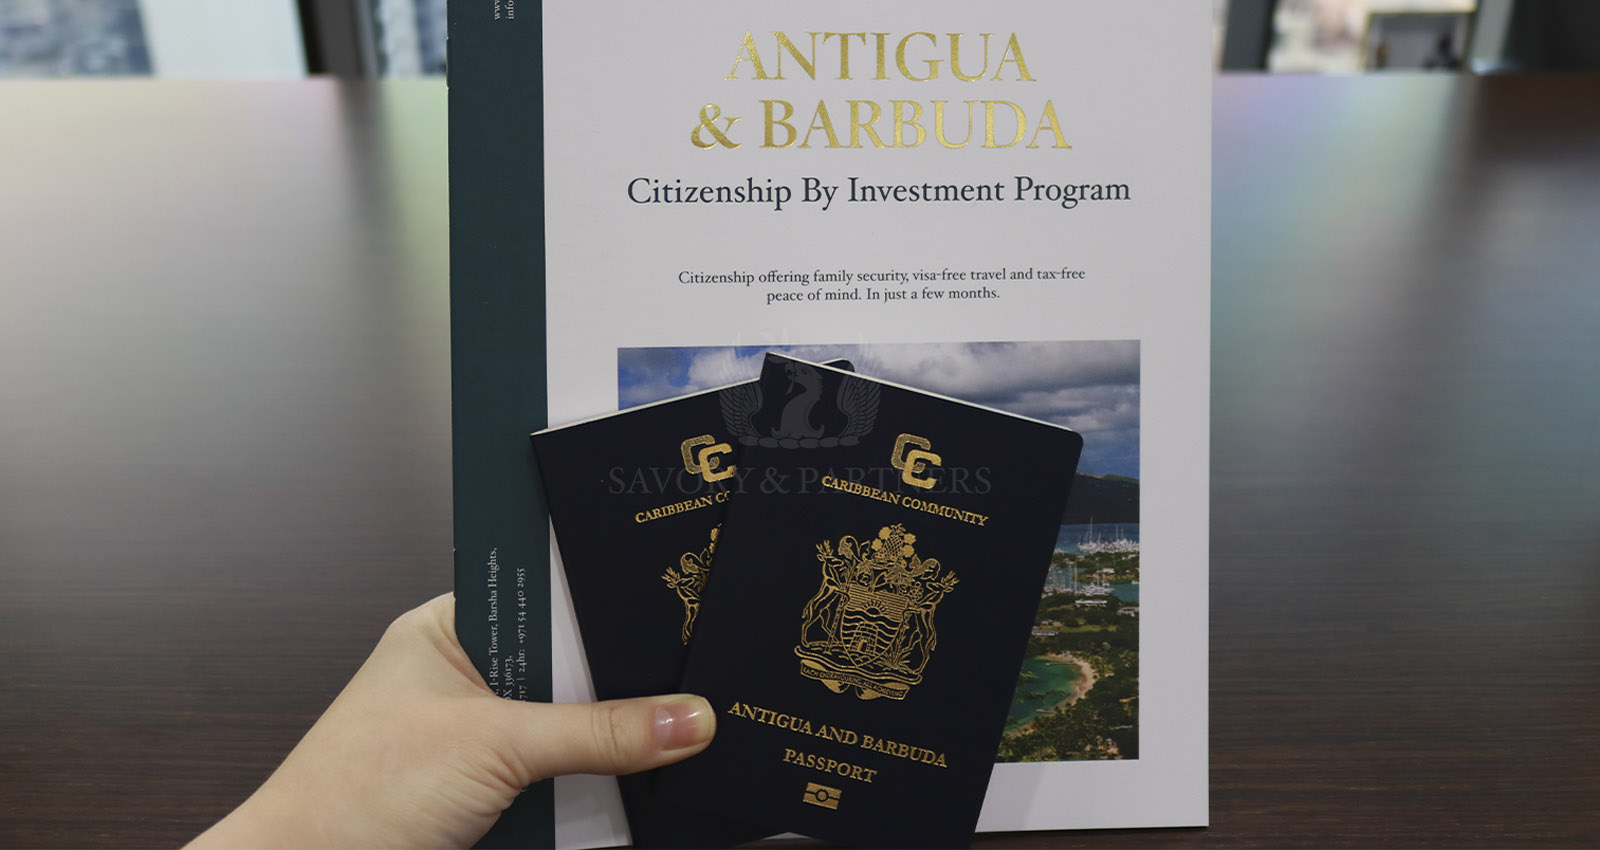 Iraqis are now eligible for Antigua & Barbuda Citizenship by Investment Program